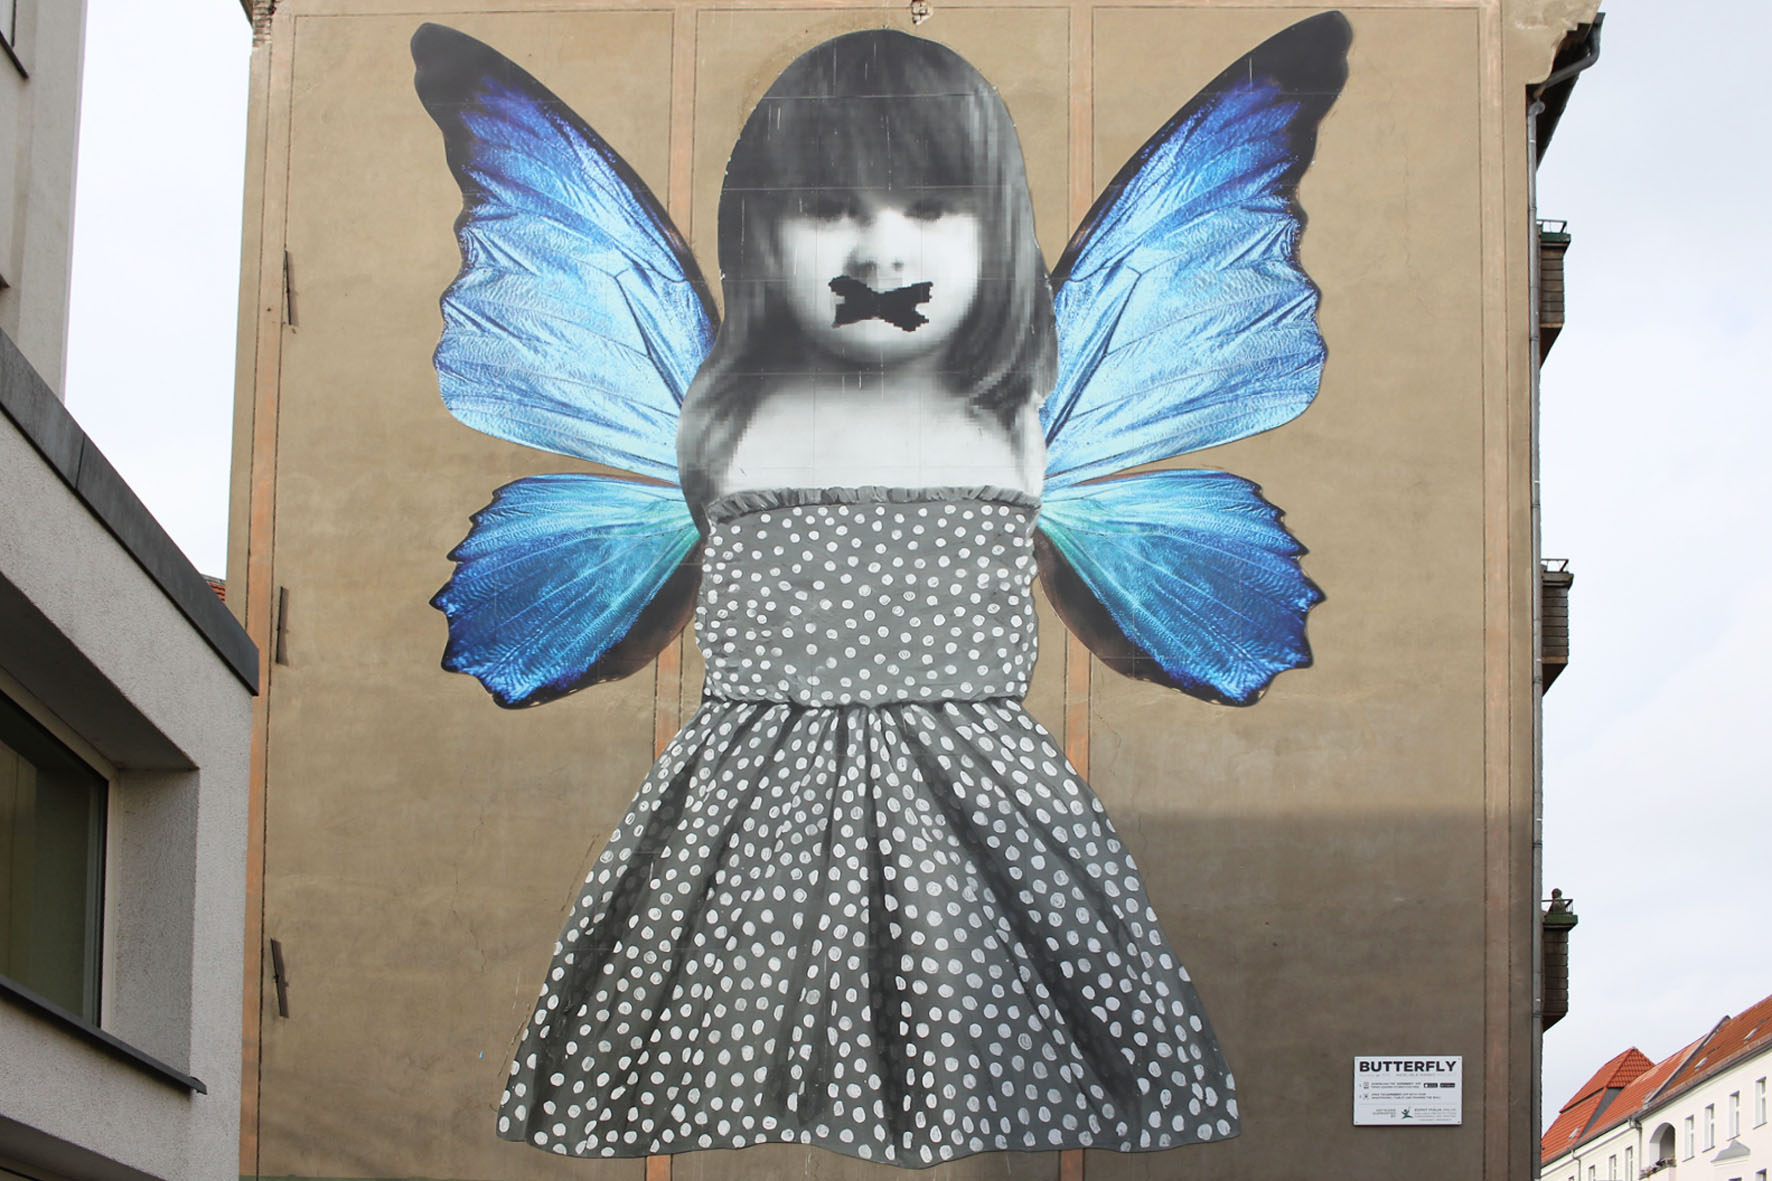 Butterfly mural by michelle tombolini andberlin for Butterfly mural